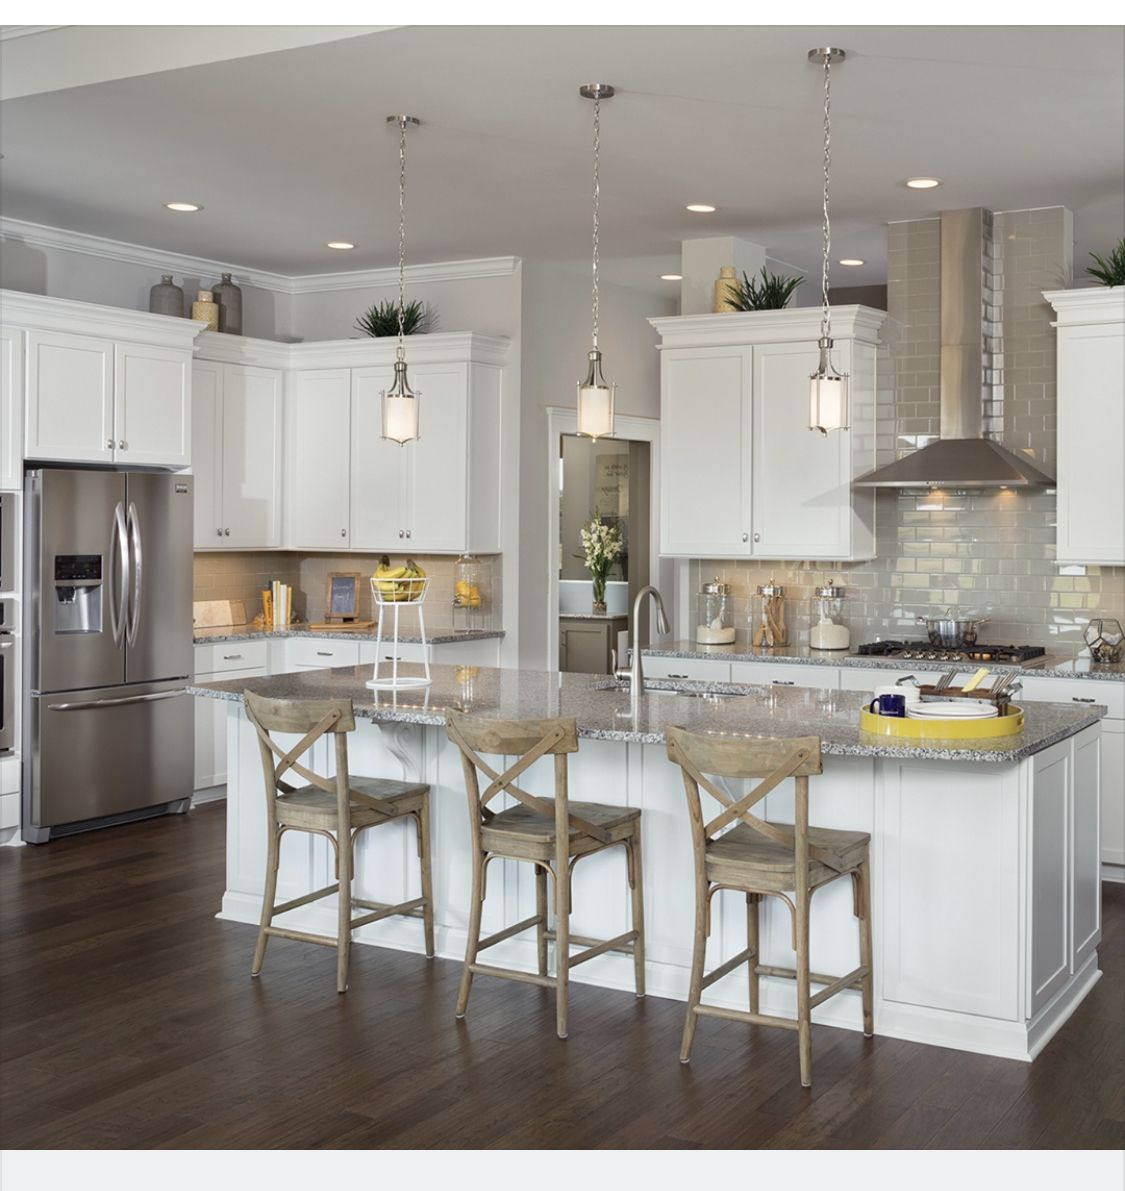 Pin by Shyondha Clark on Kitchens and more in 2020 Home